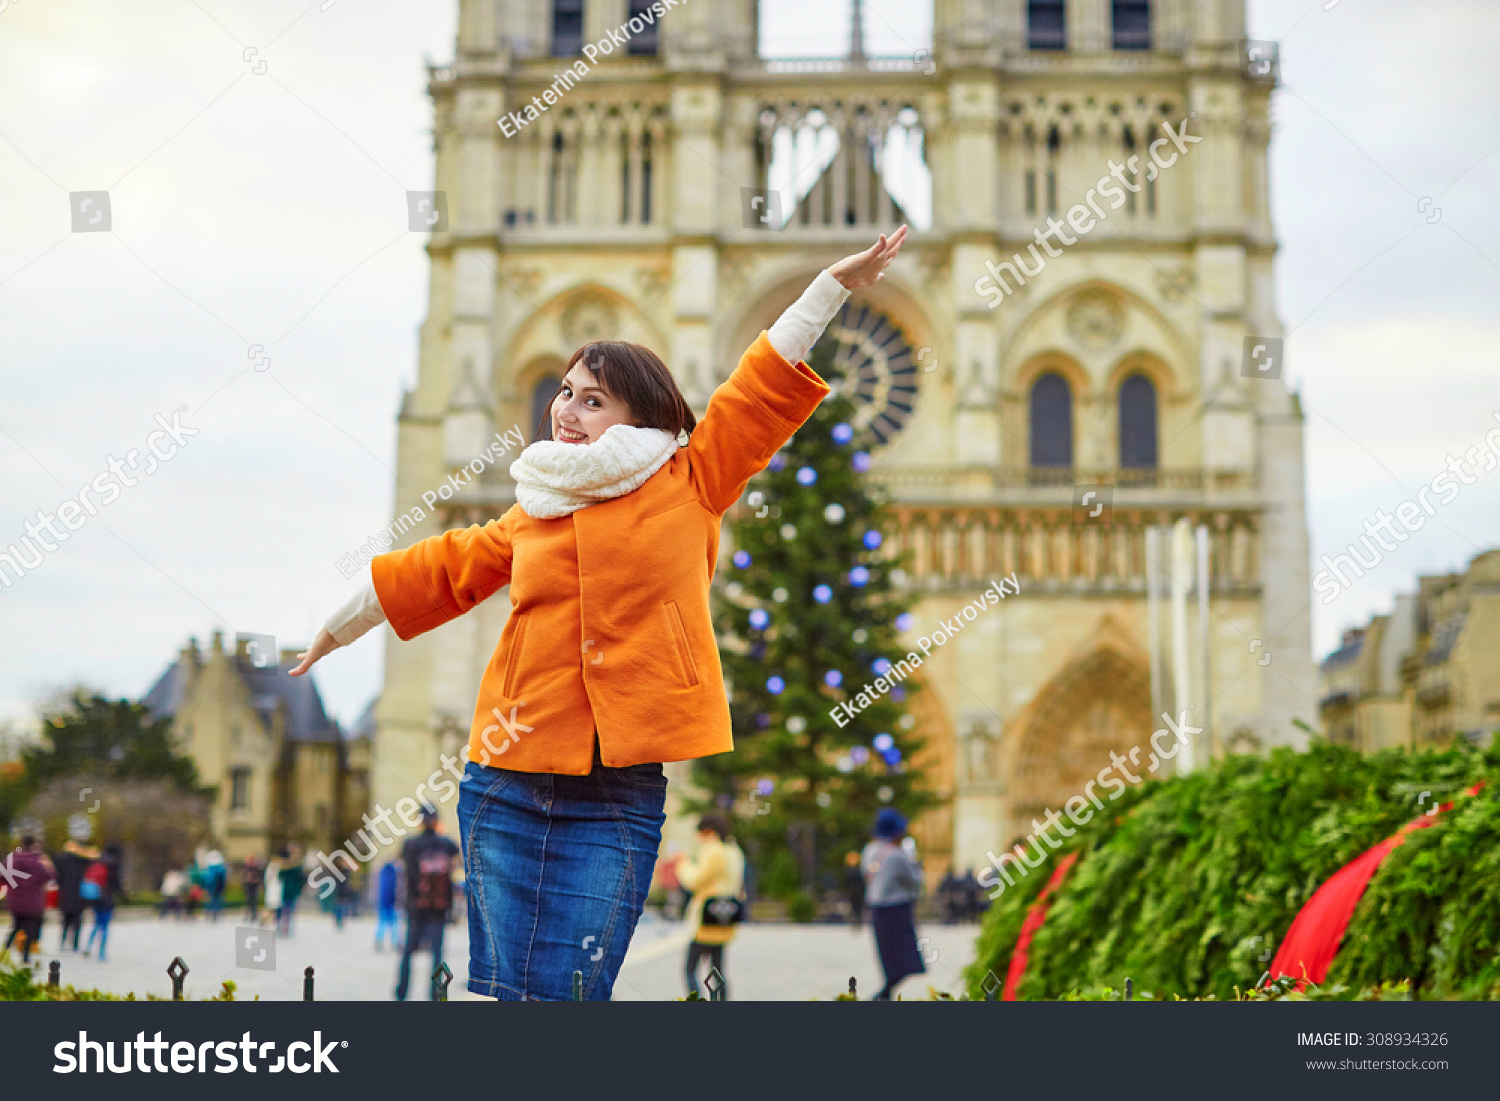 Happy Young Tourist Paris On Winter Stock Photo 308934326 ...